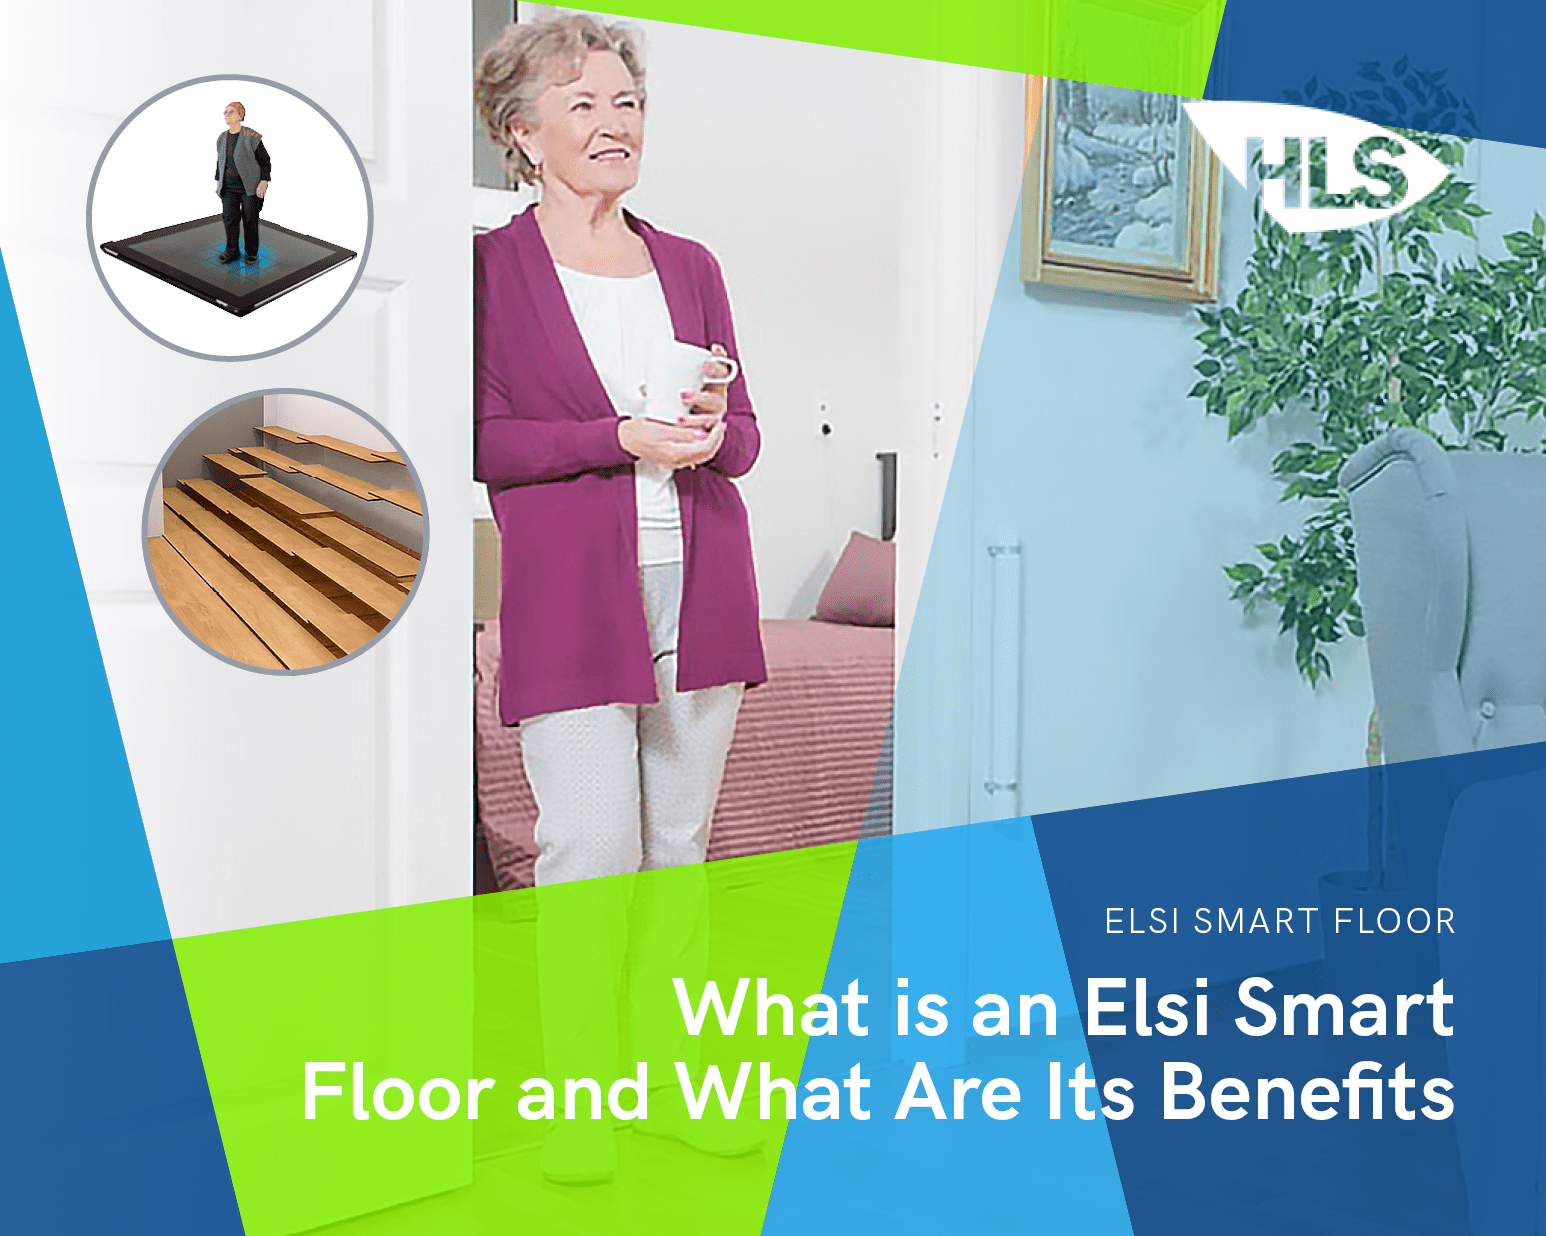 What is an Elsi Smart Floor and What Are Its Benefits?